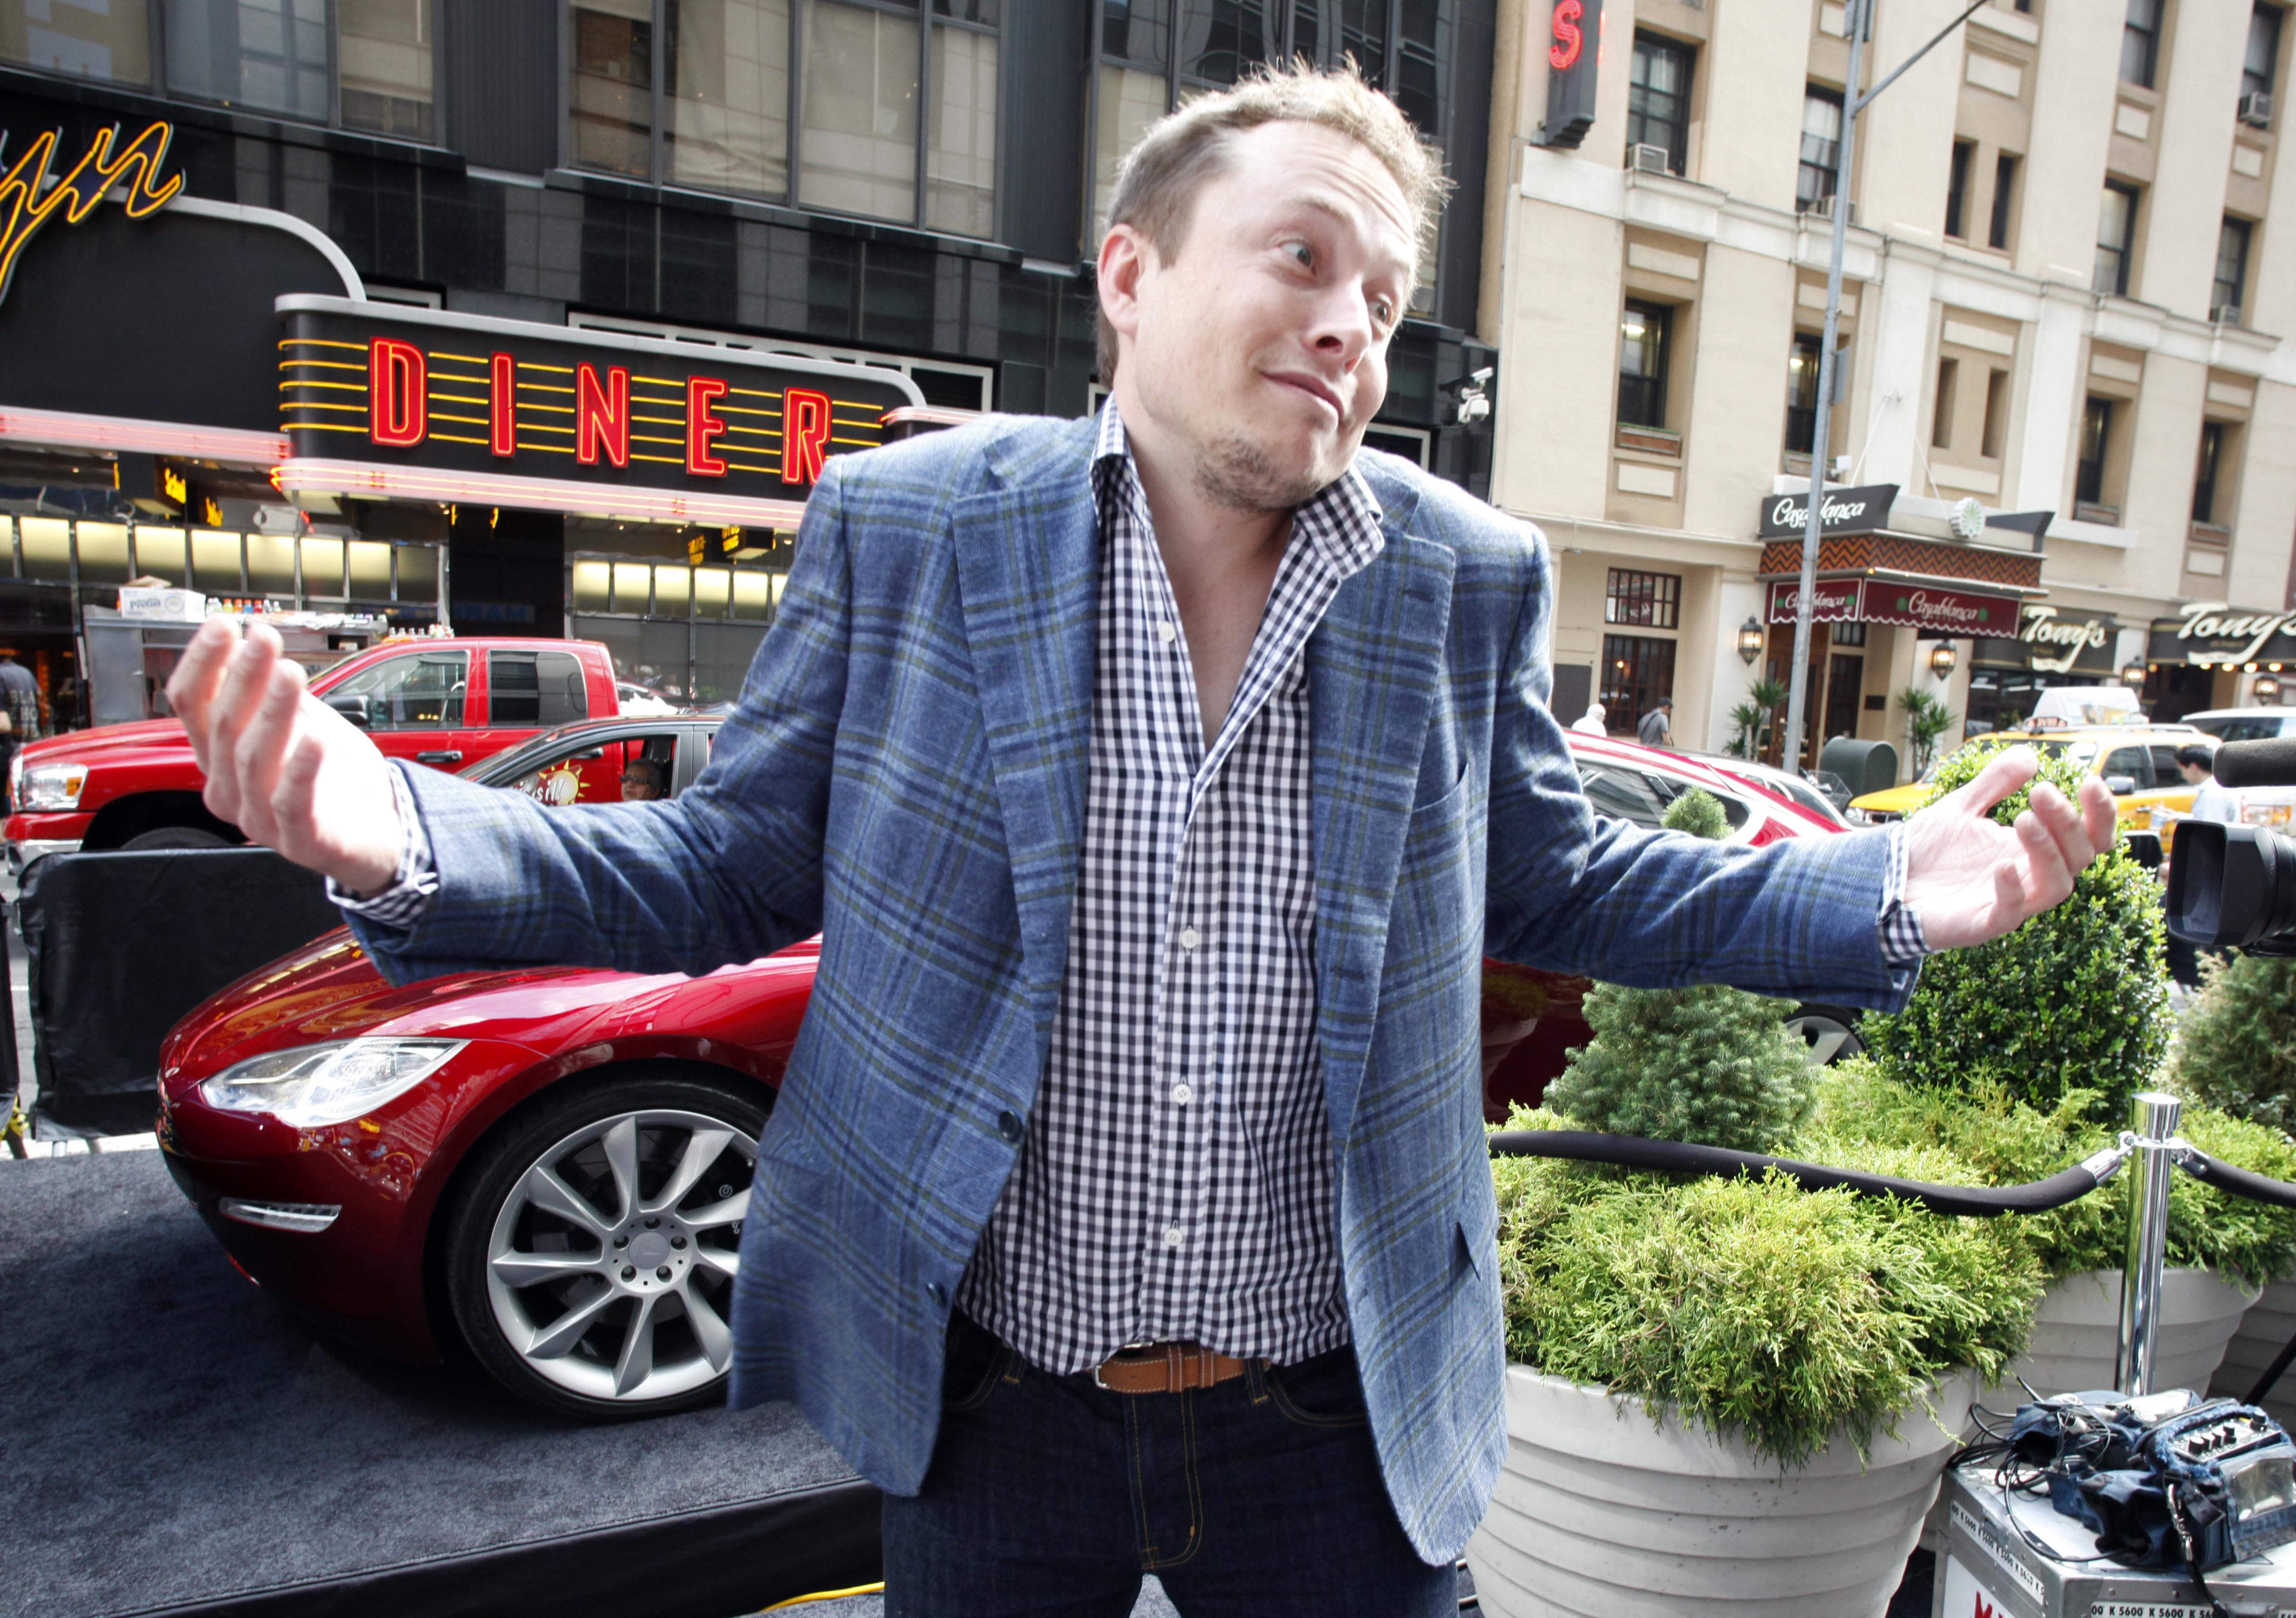 Sorry Burners, Elon Musk says he never toured a 4,000 acre property to build a permanent Burning Man city